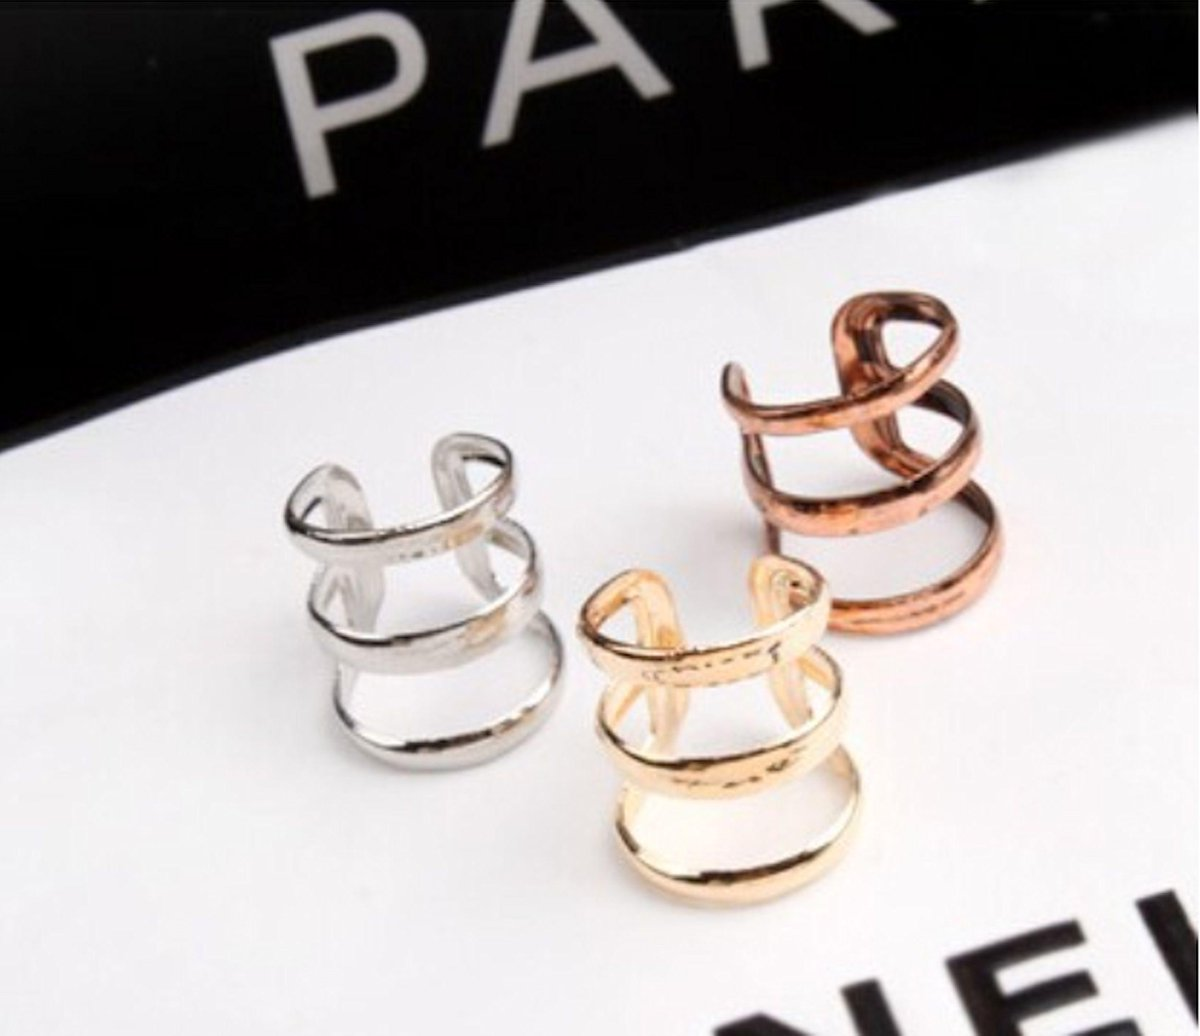 new no piercing needed #fashion ear cuffs https://t.co/jD8NFGV78Y  https://t.co/EHFAENVvW5  #gift #specialgift #fashion